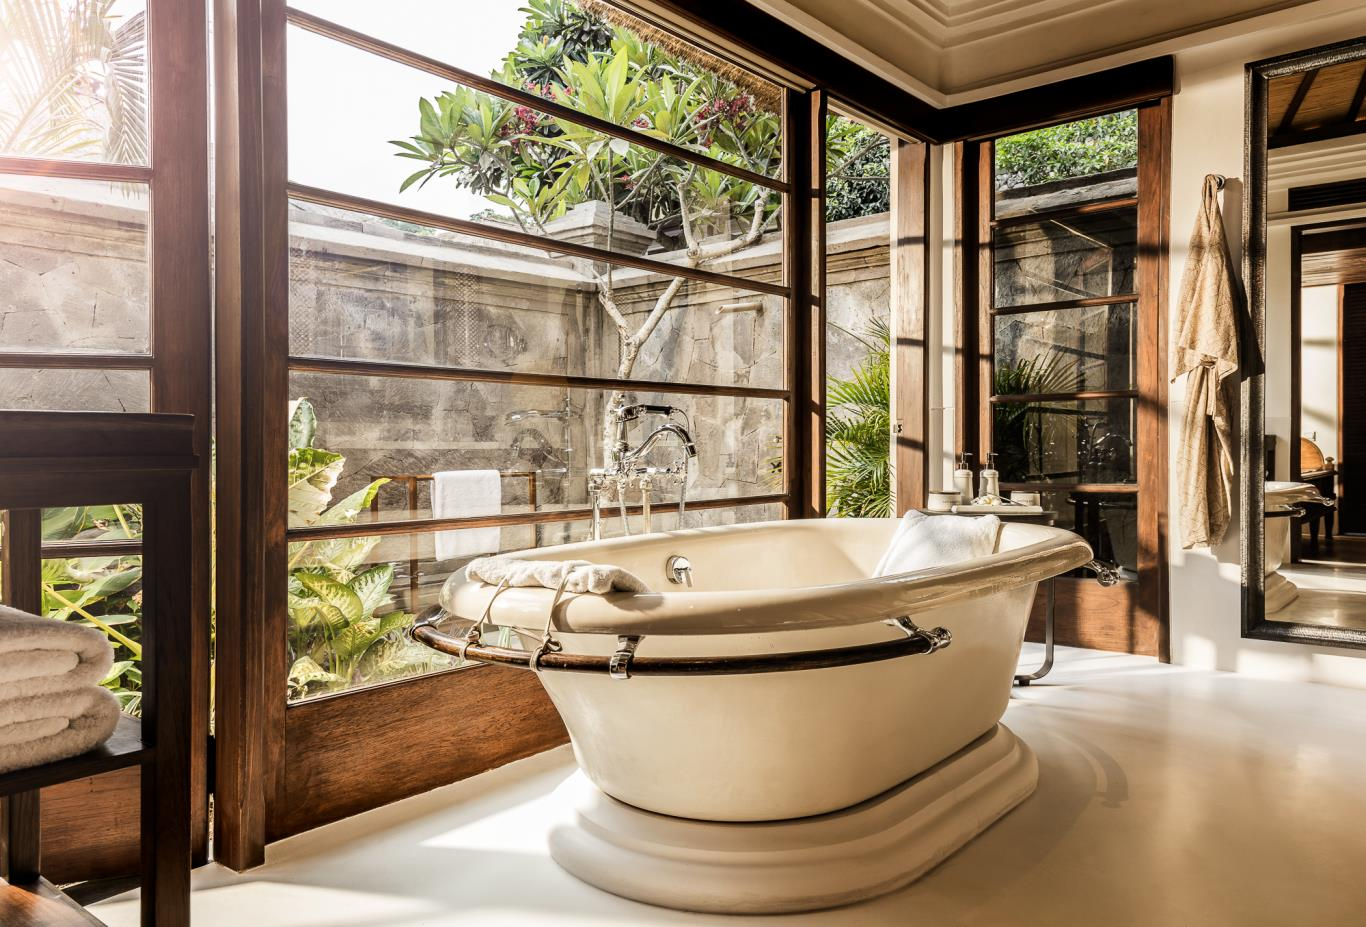 Premier Villa Bathroom